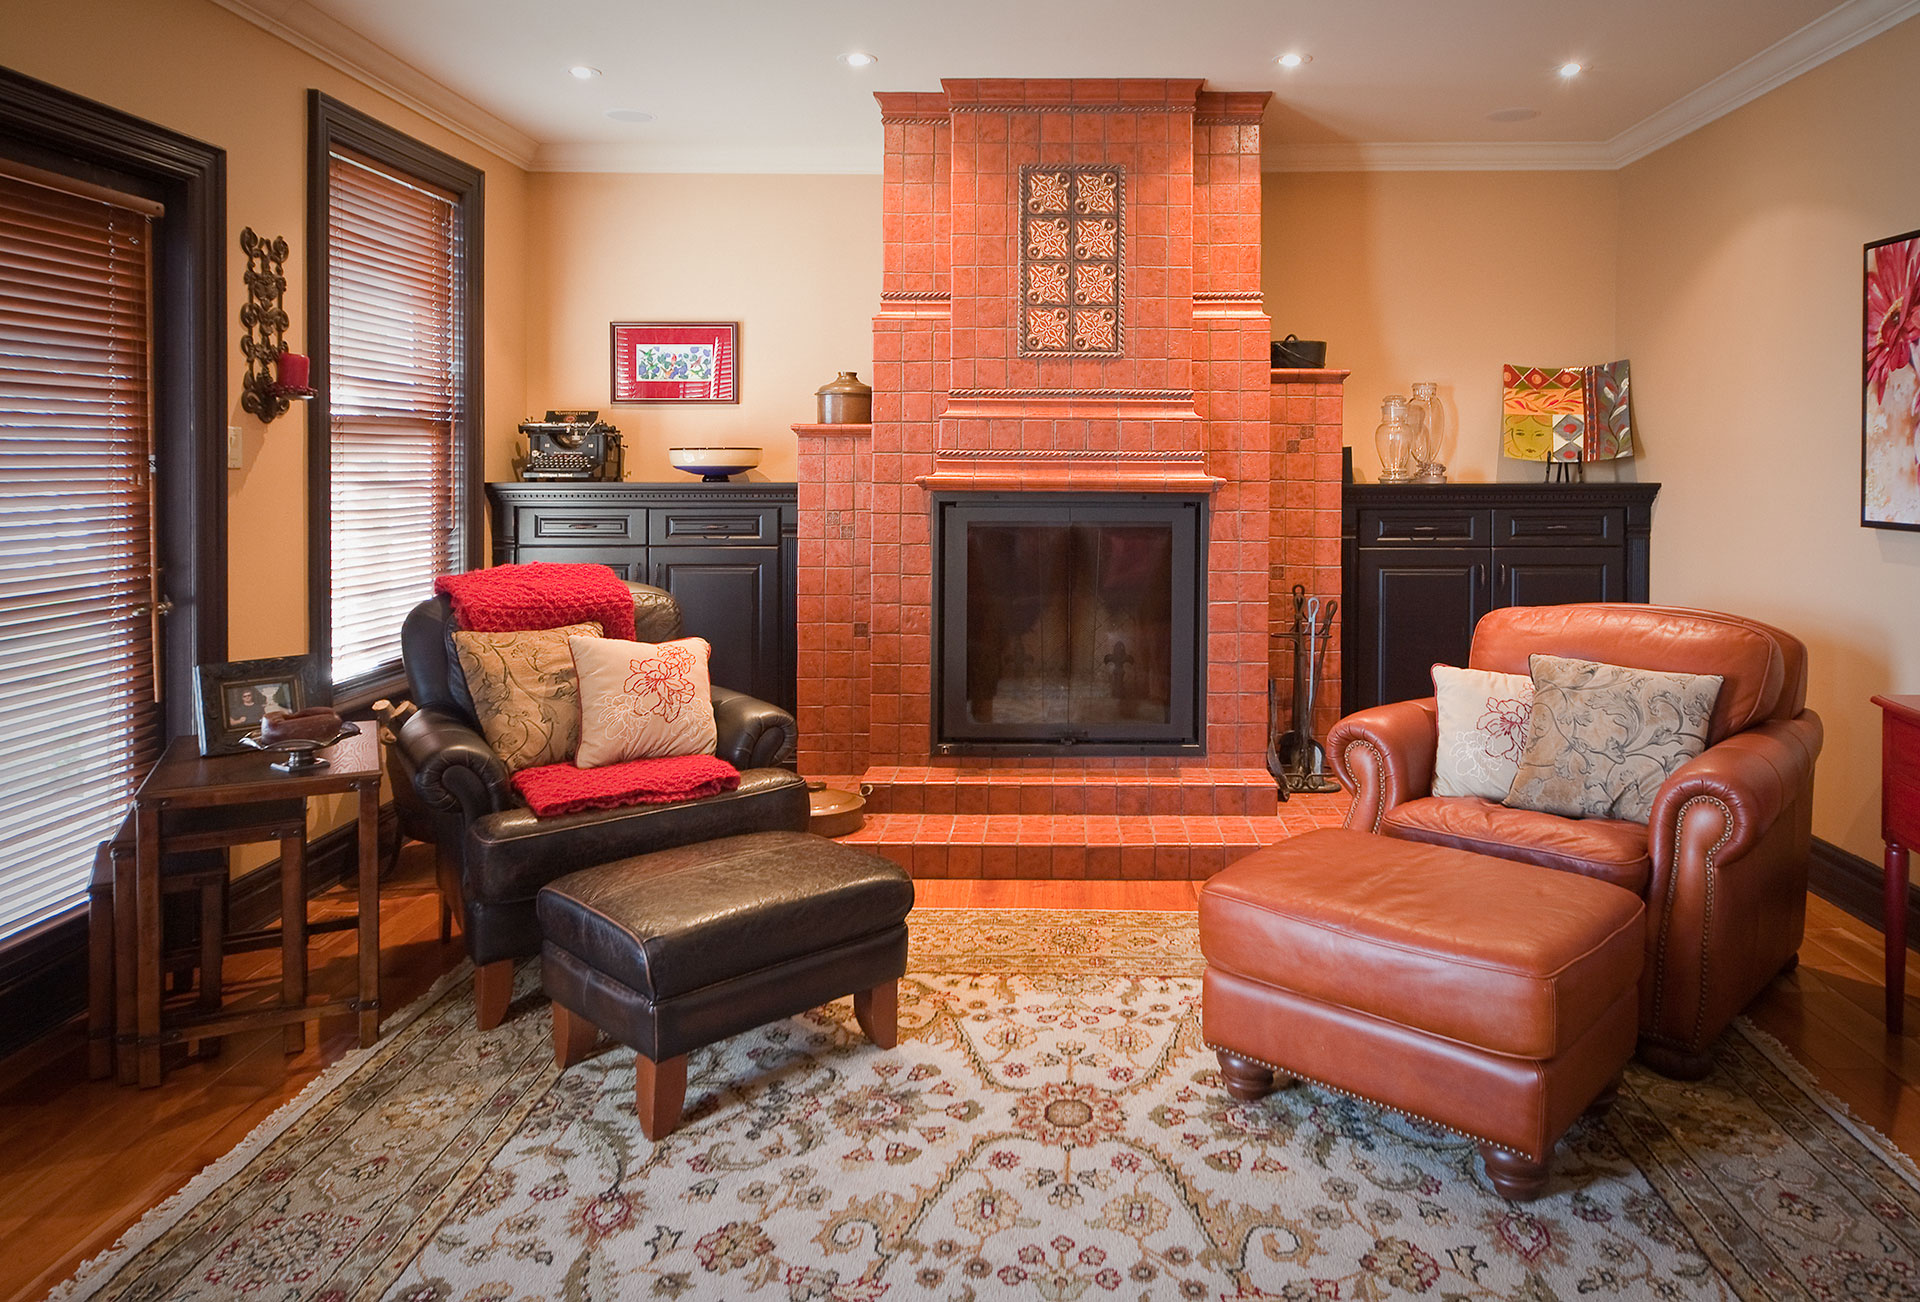 Family Room with unique tiled gas fireplace - Sheridan Interiors